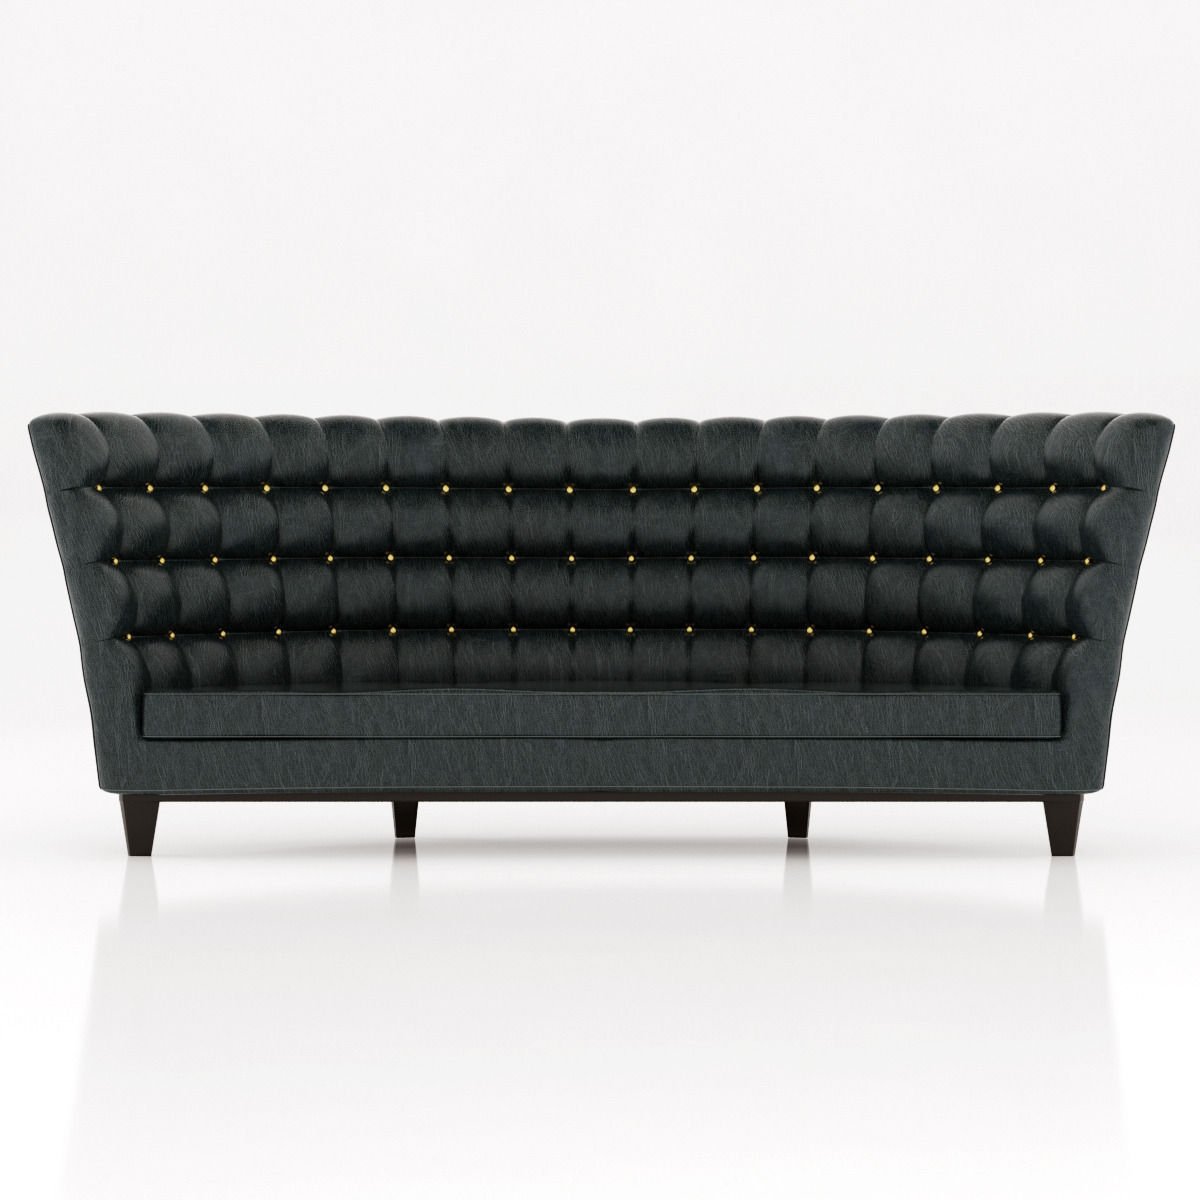 3D model contemporary leather sofa | CGTrader